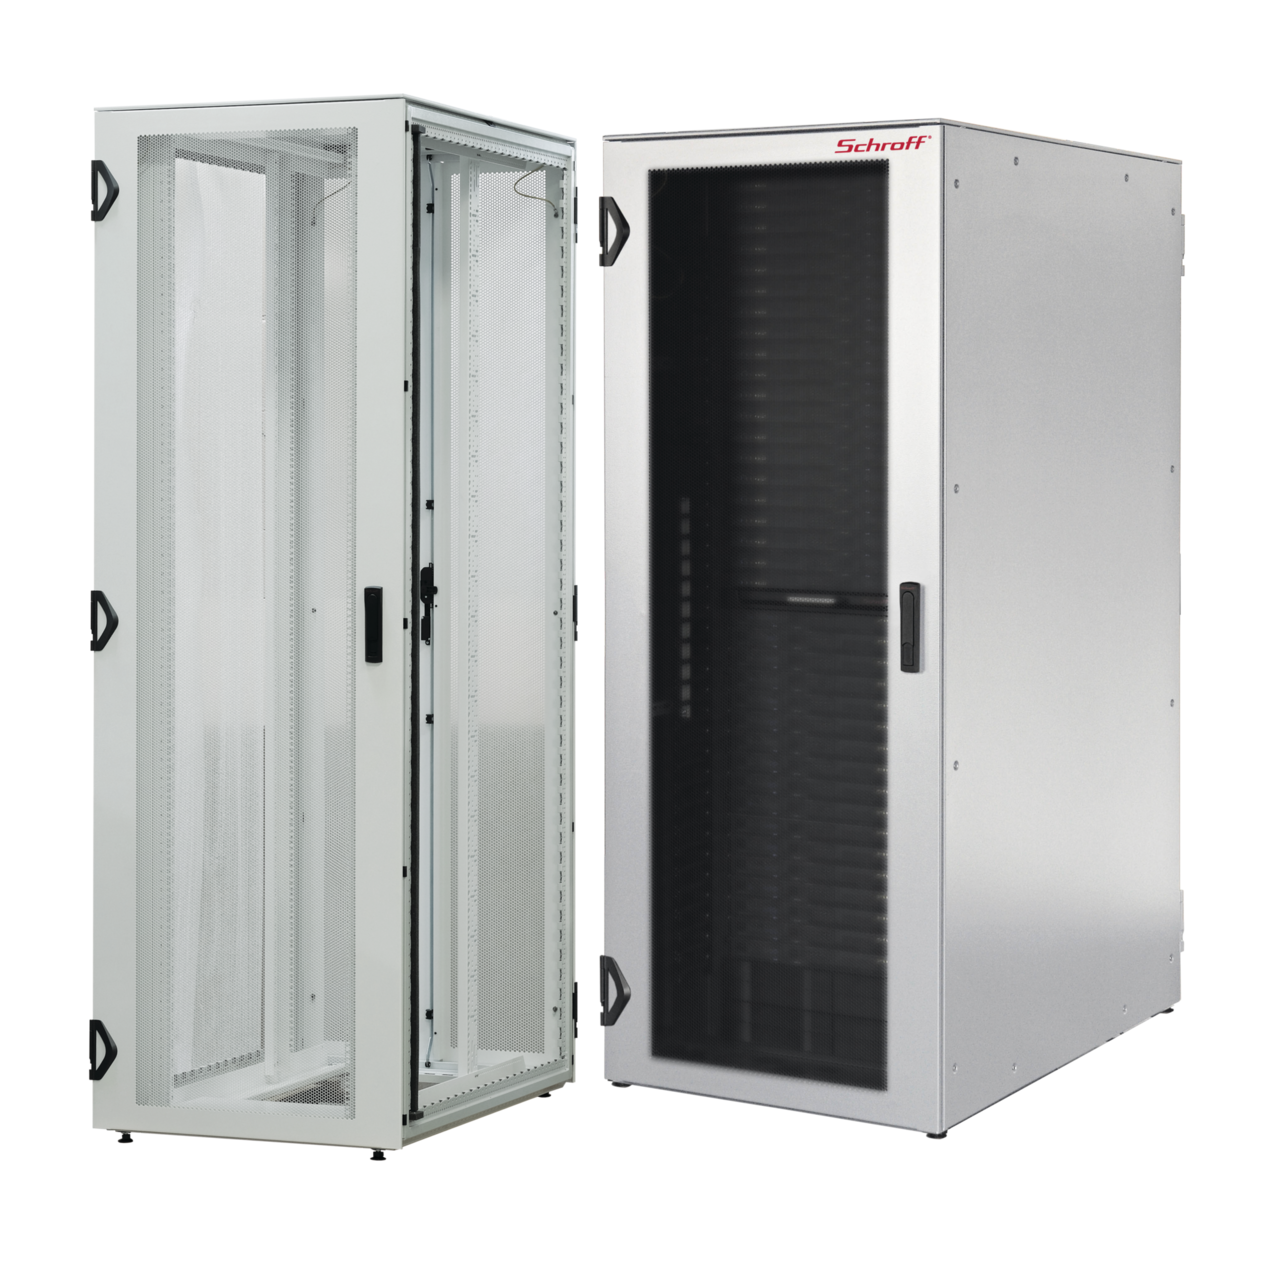 Image for VARISTAR Server, RAL 7035, 1600 kg, side-by-side cabinet, single cabinet from nVent SCHROFF | Europe, Middle East, Africa and India